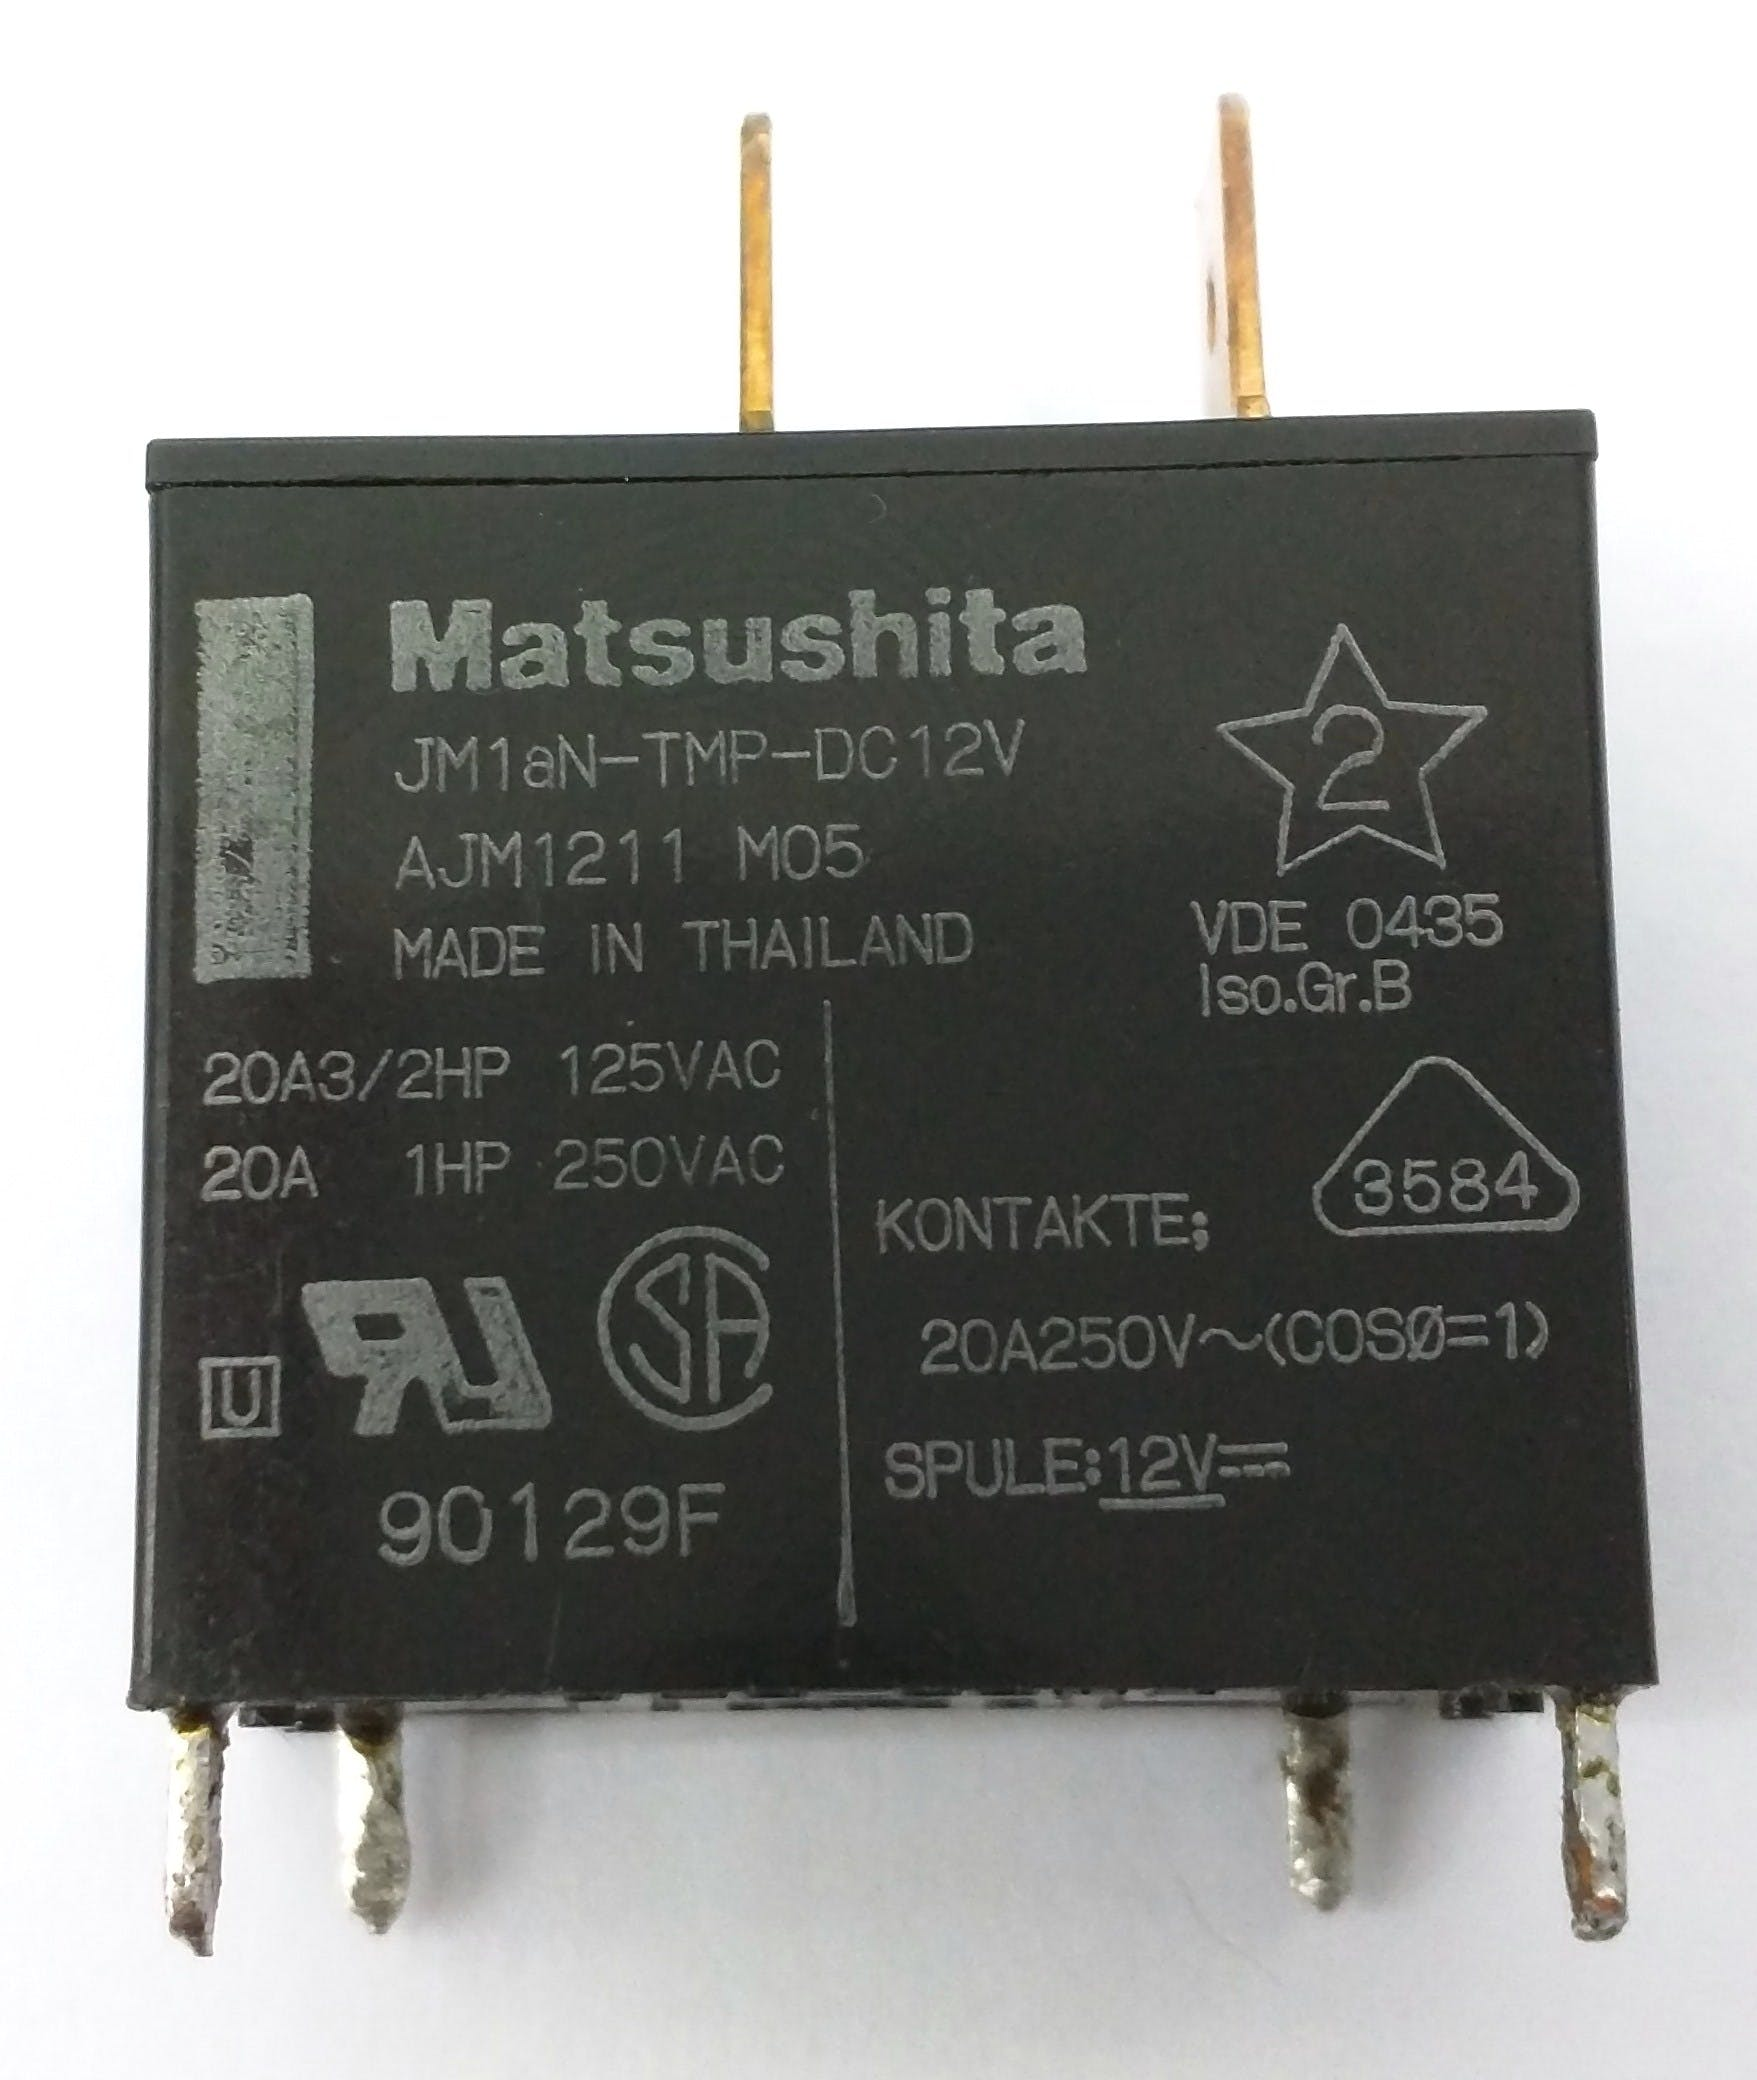 Notice the 12v and 20A printed on it